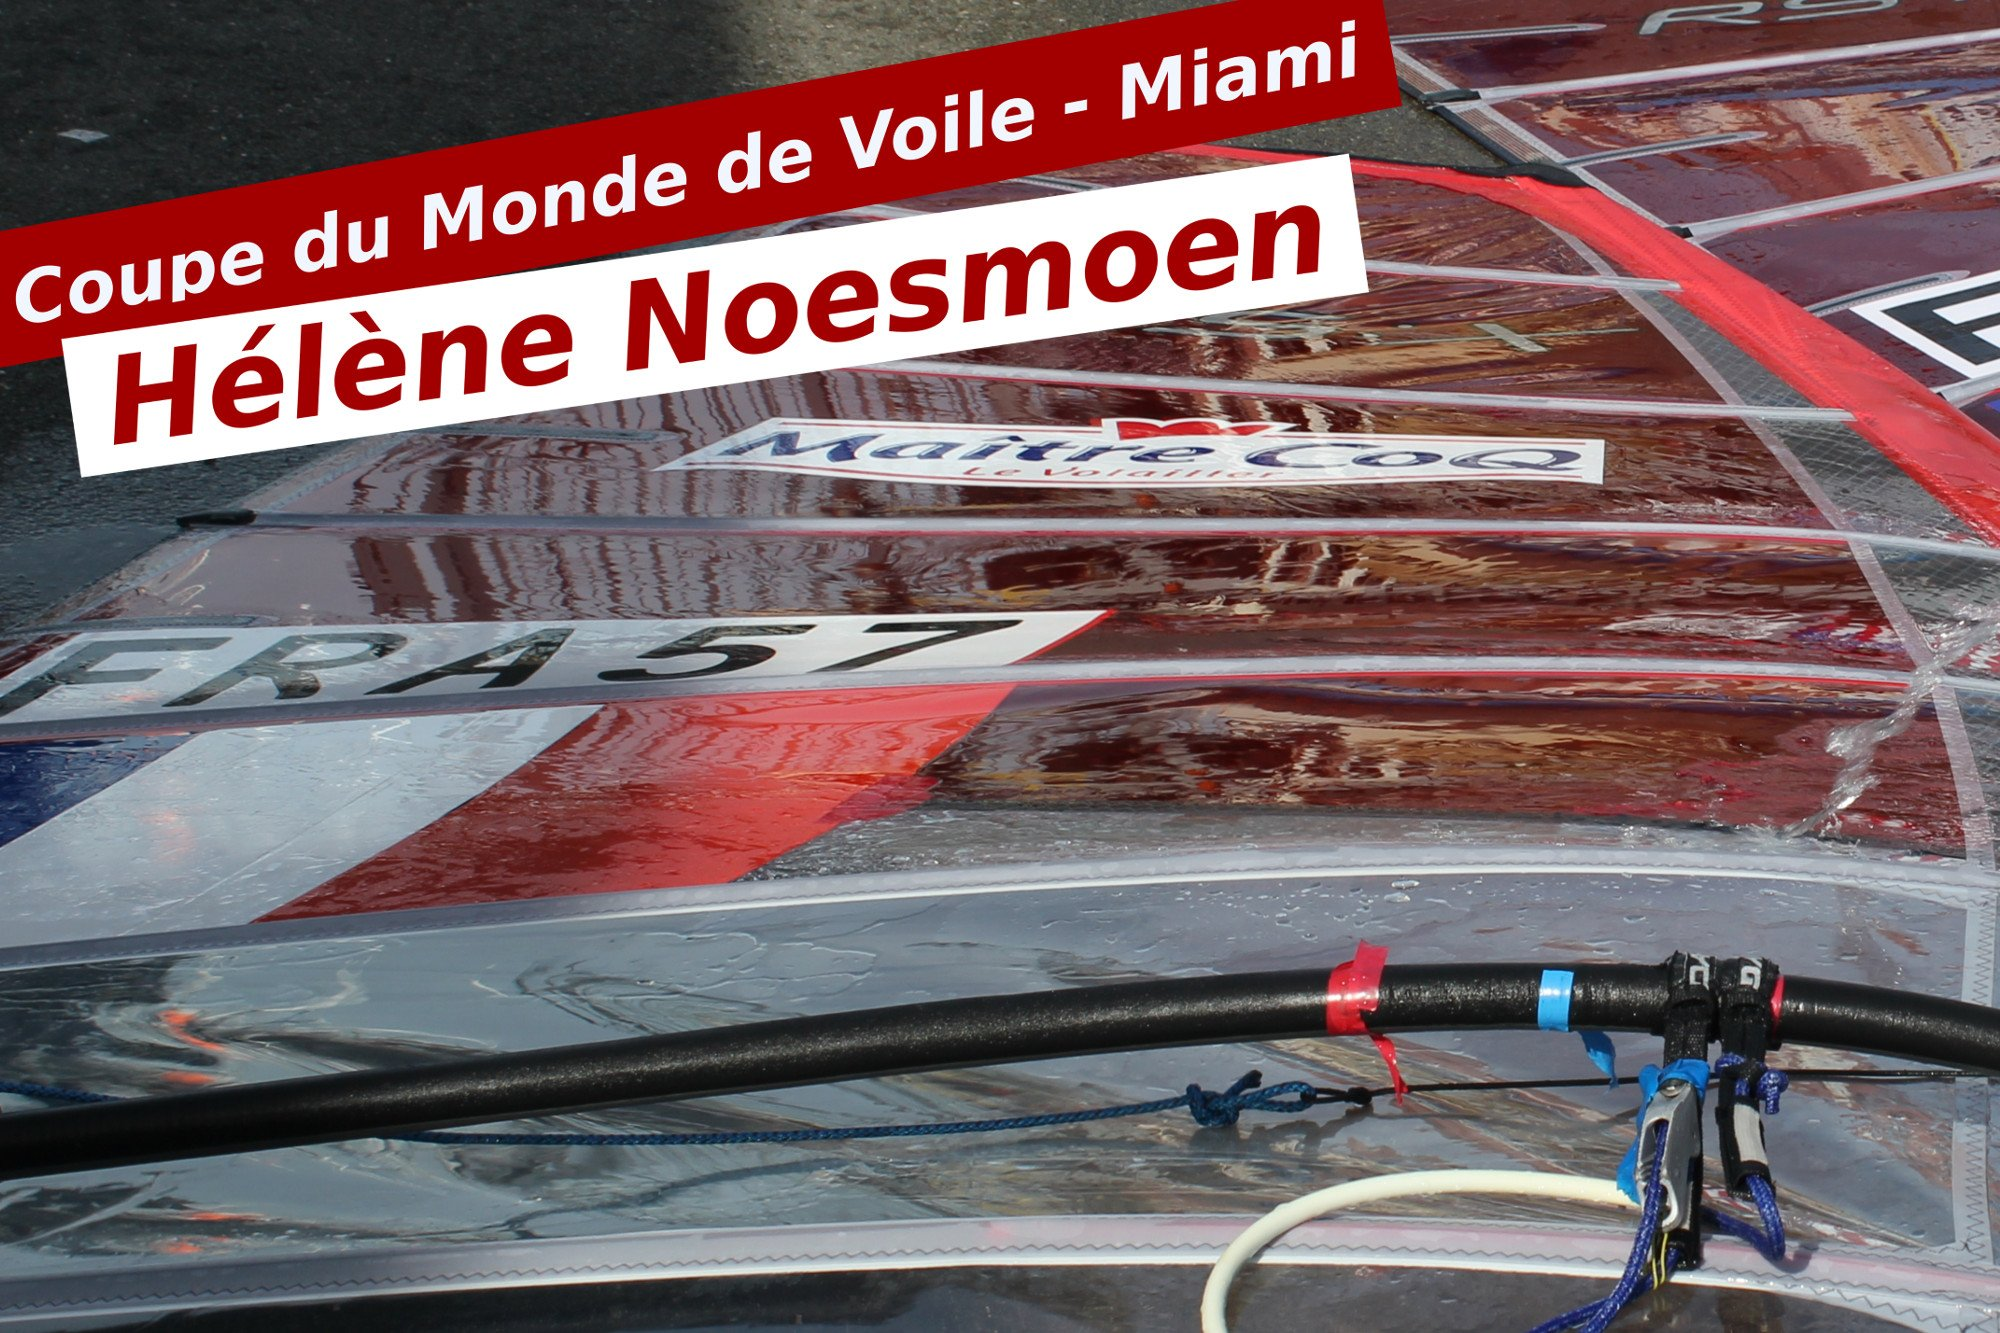 helene noesmoen - sailing world cup - rsx - miami 2016